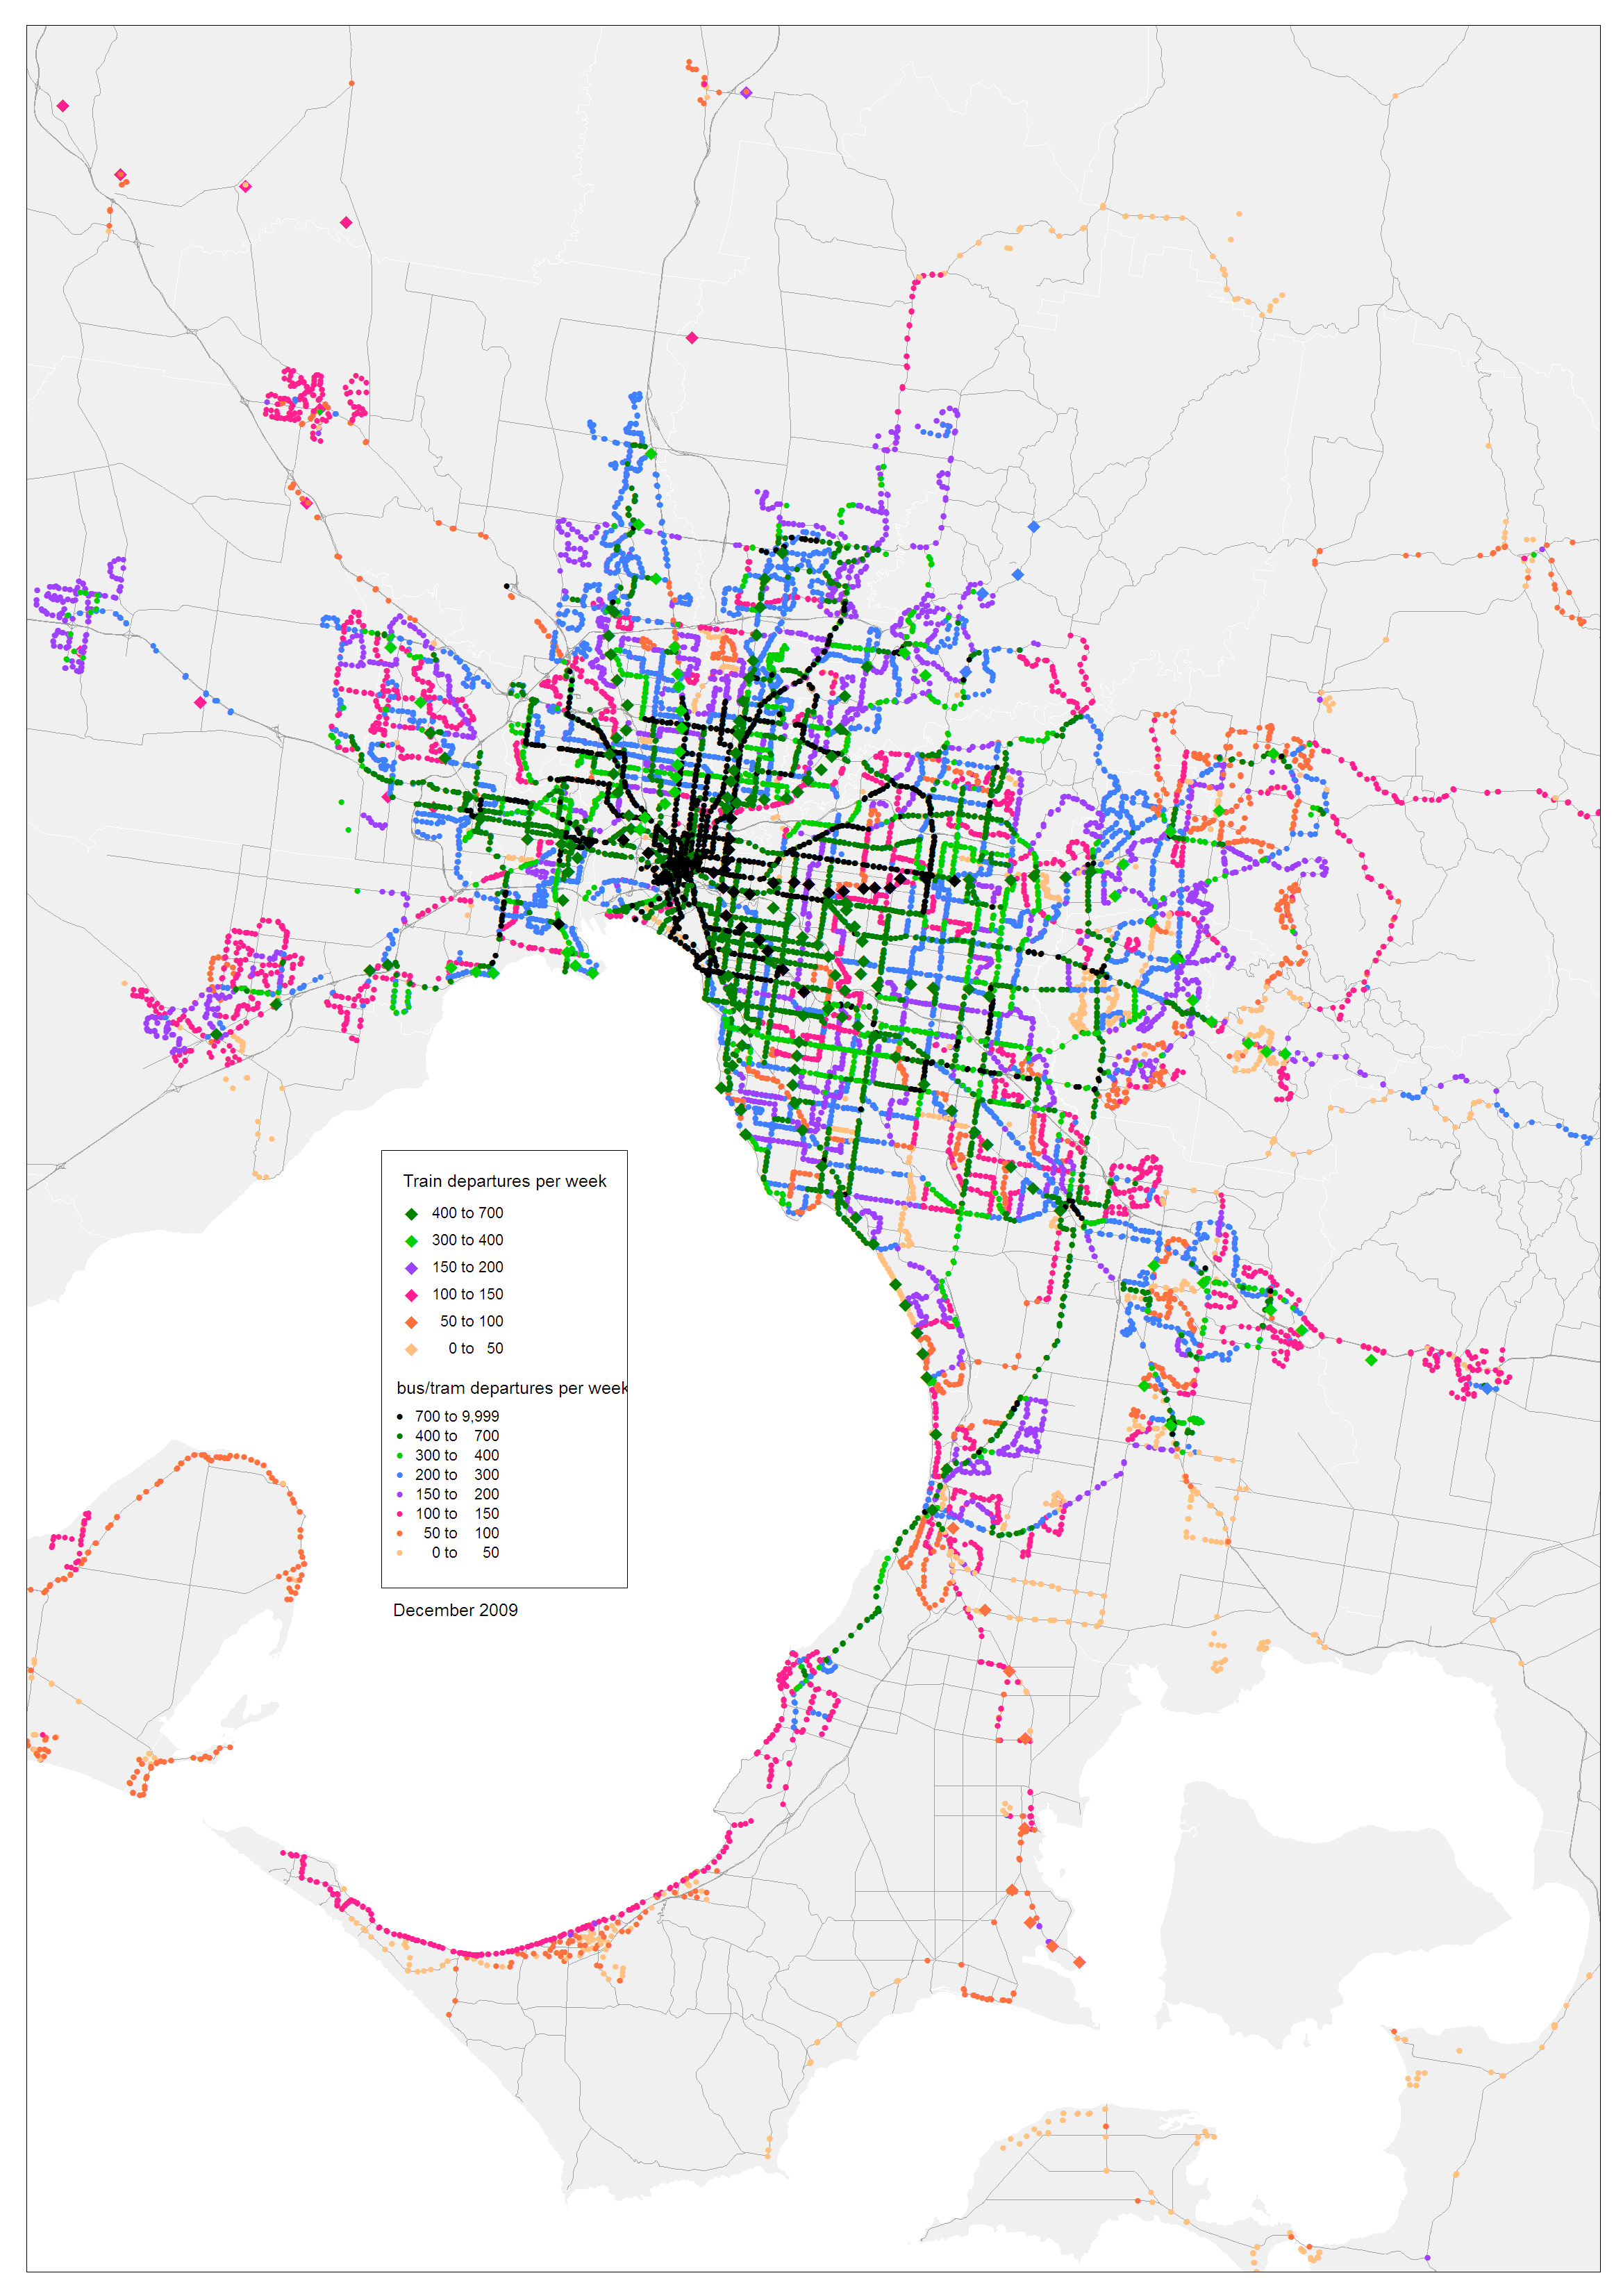 Mapping public transport service provision Charting Transport